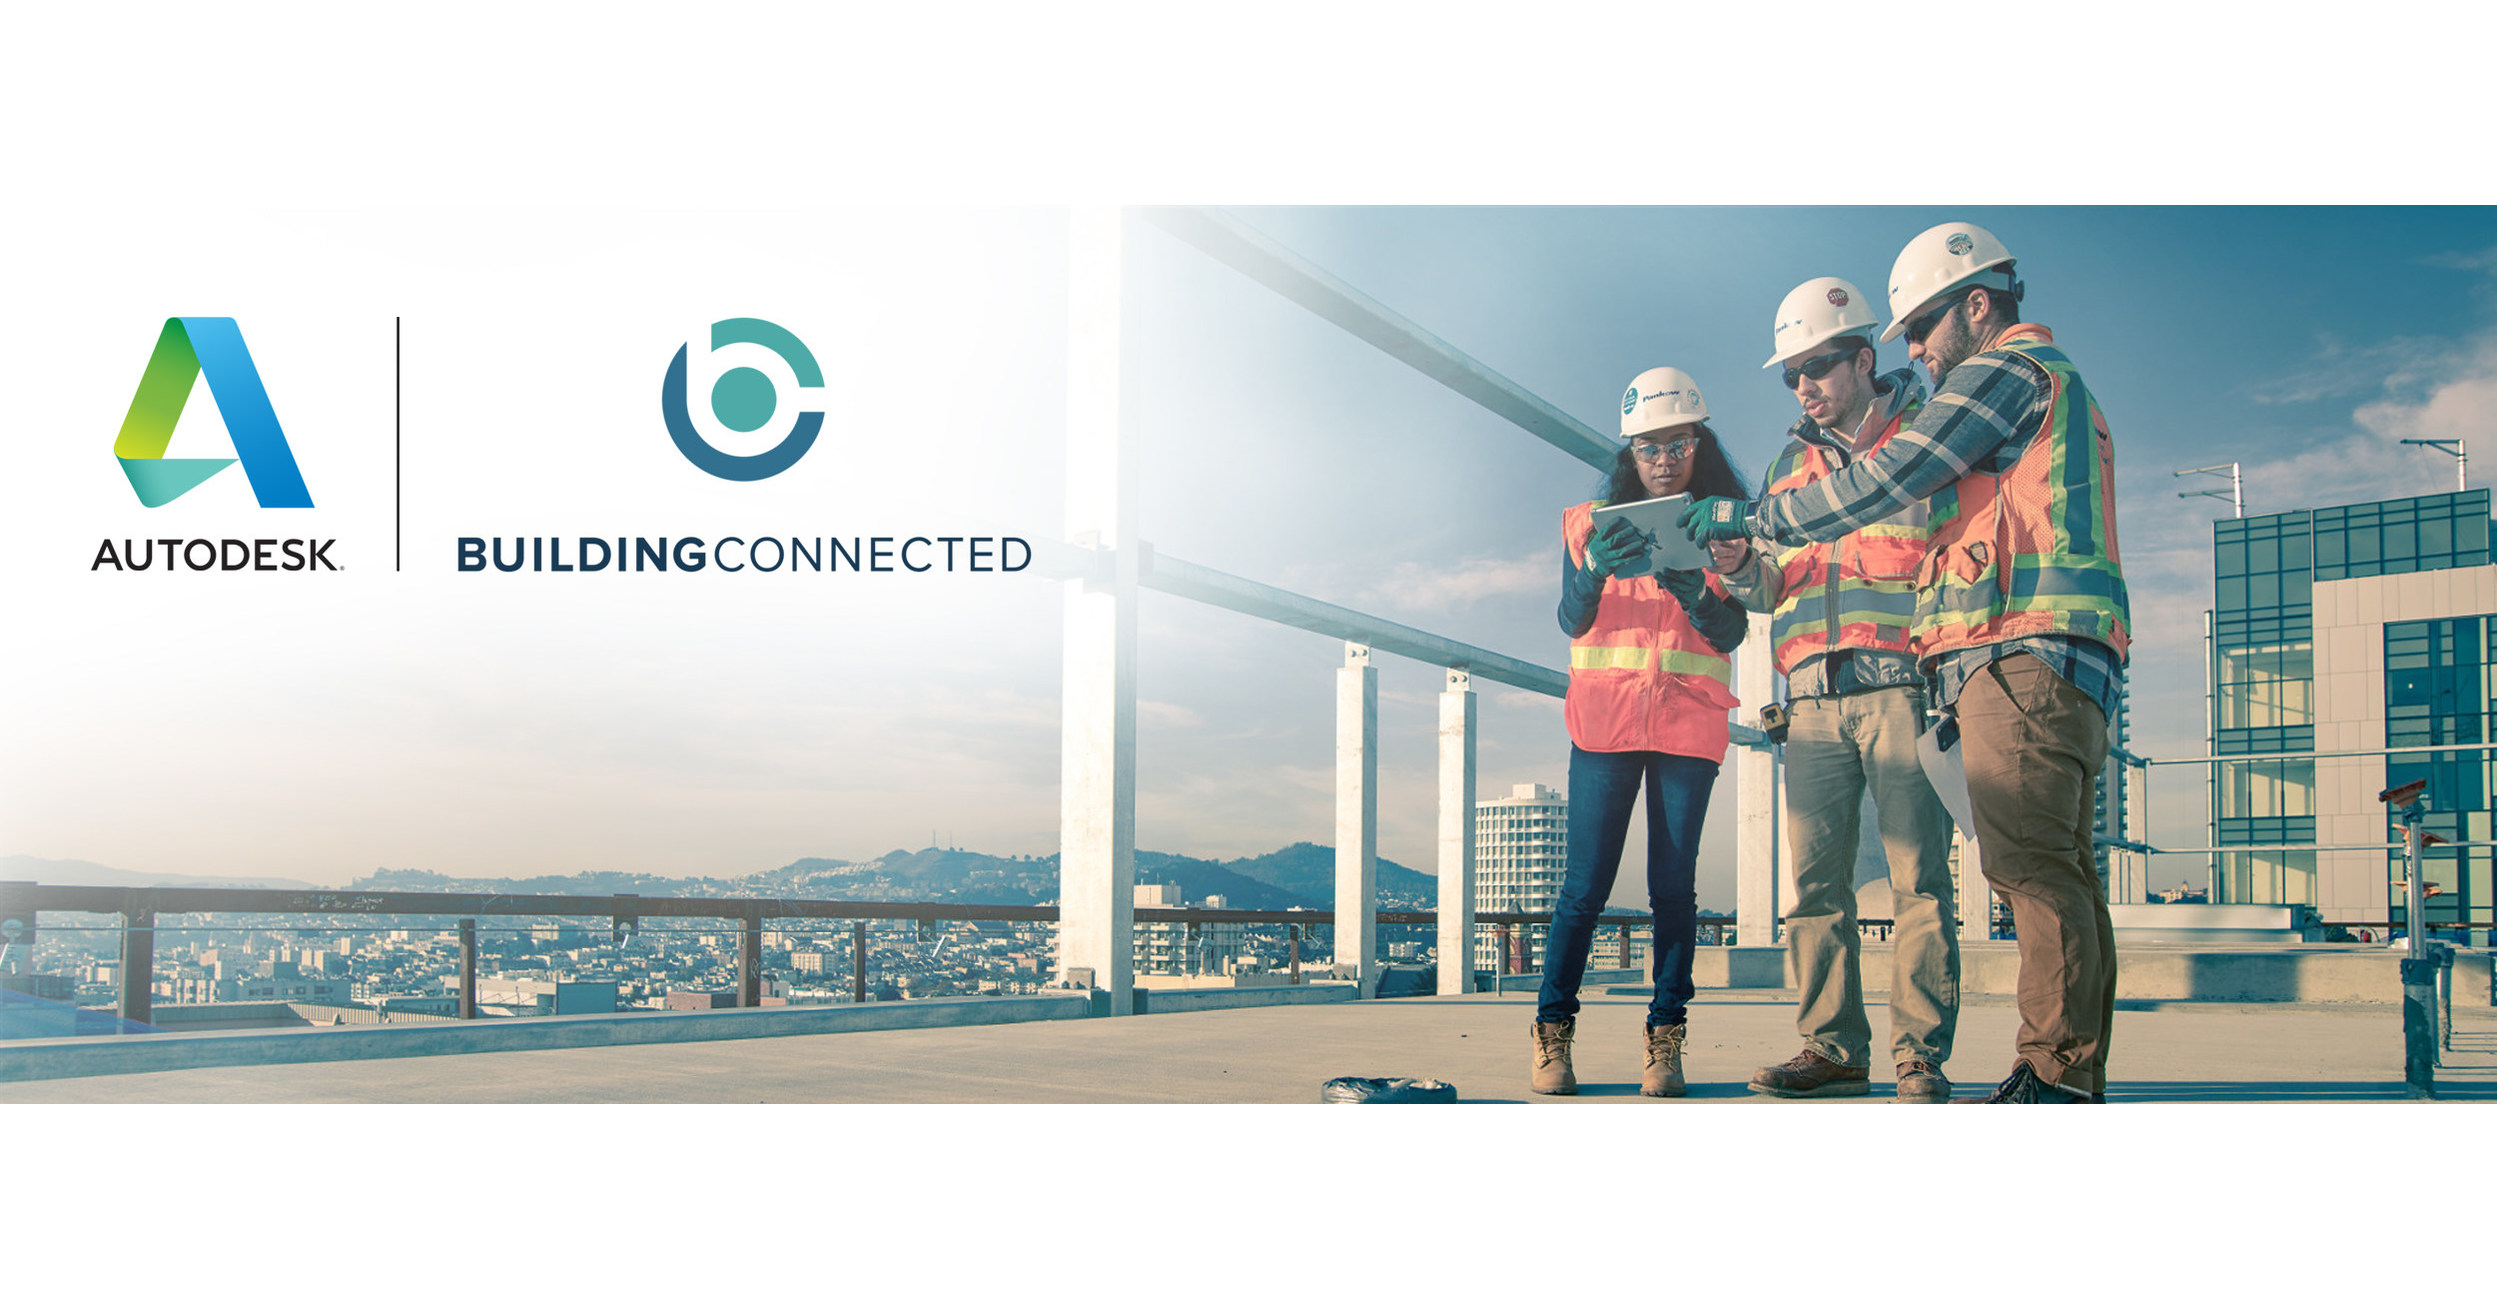 Autodesk to Acquire BuildingConnected, a Leading